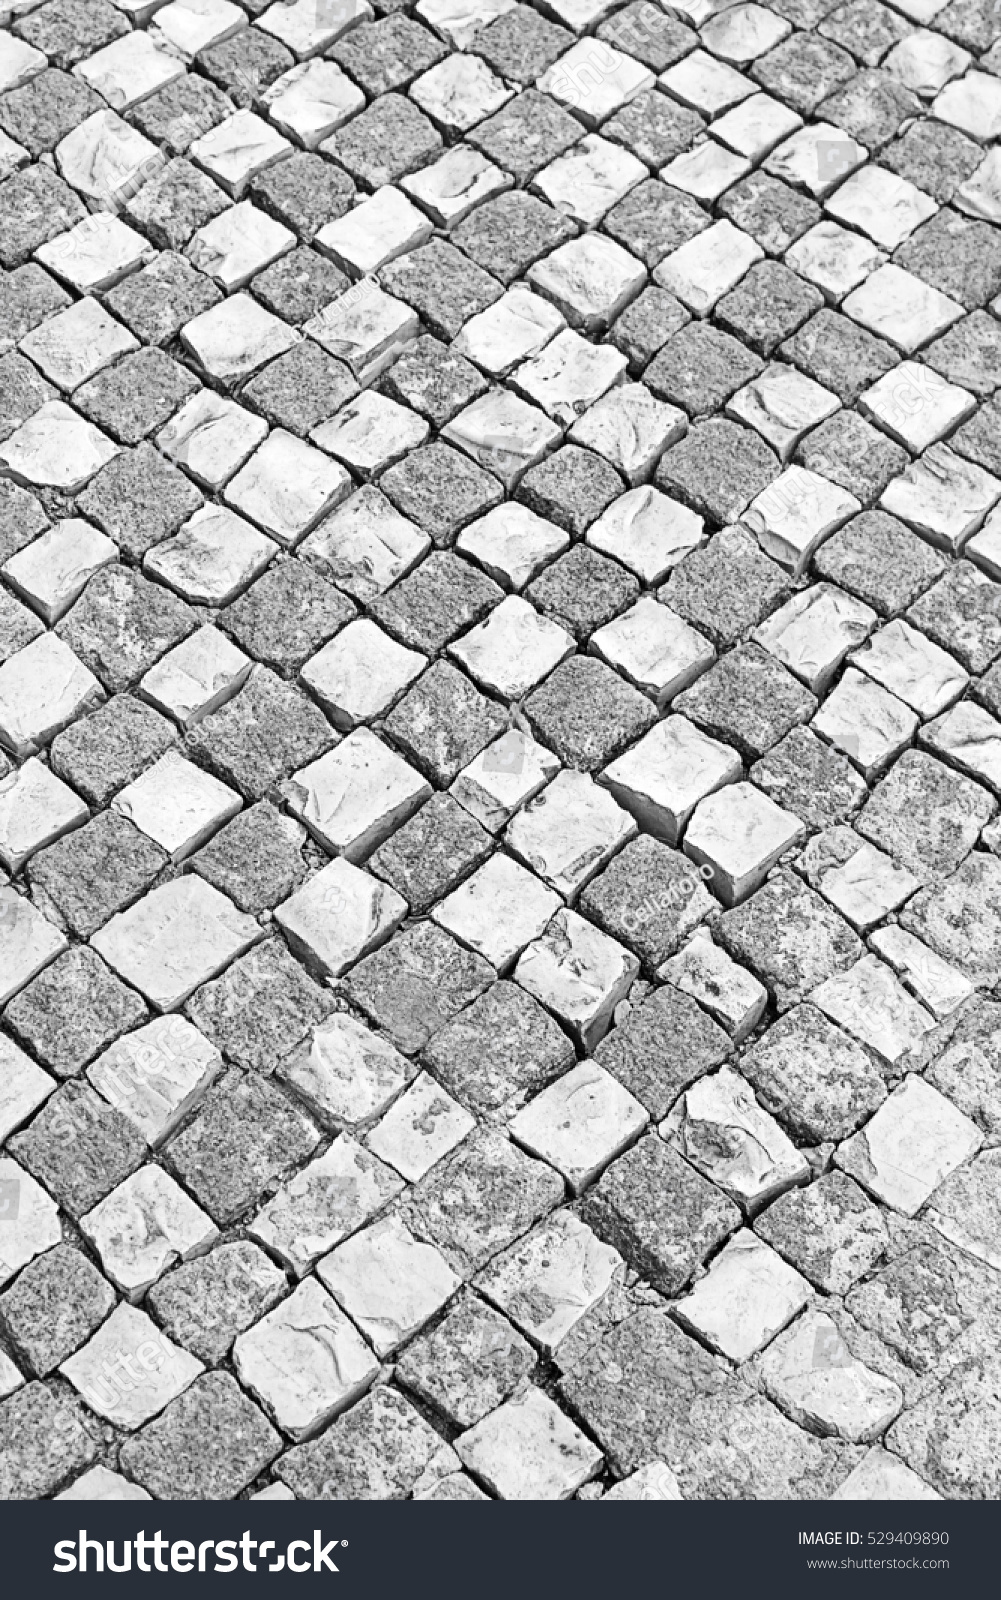 Diamond floor tile urban construction stock photo 529409890 diamond floor tile urban and construction dailygadgetfo Image collections